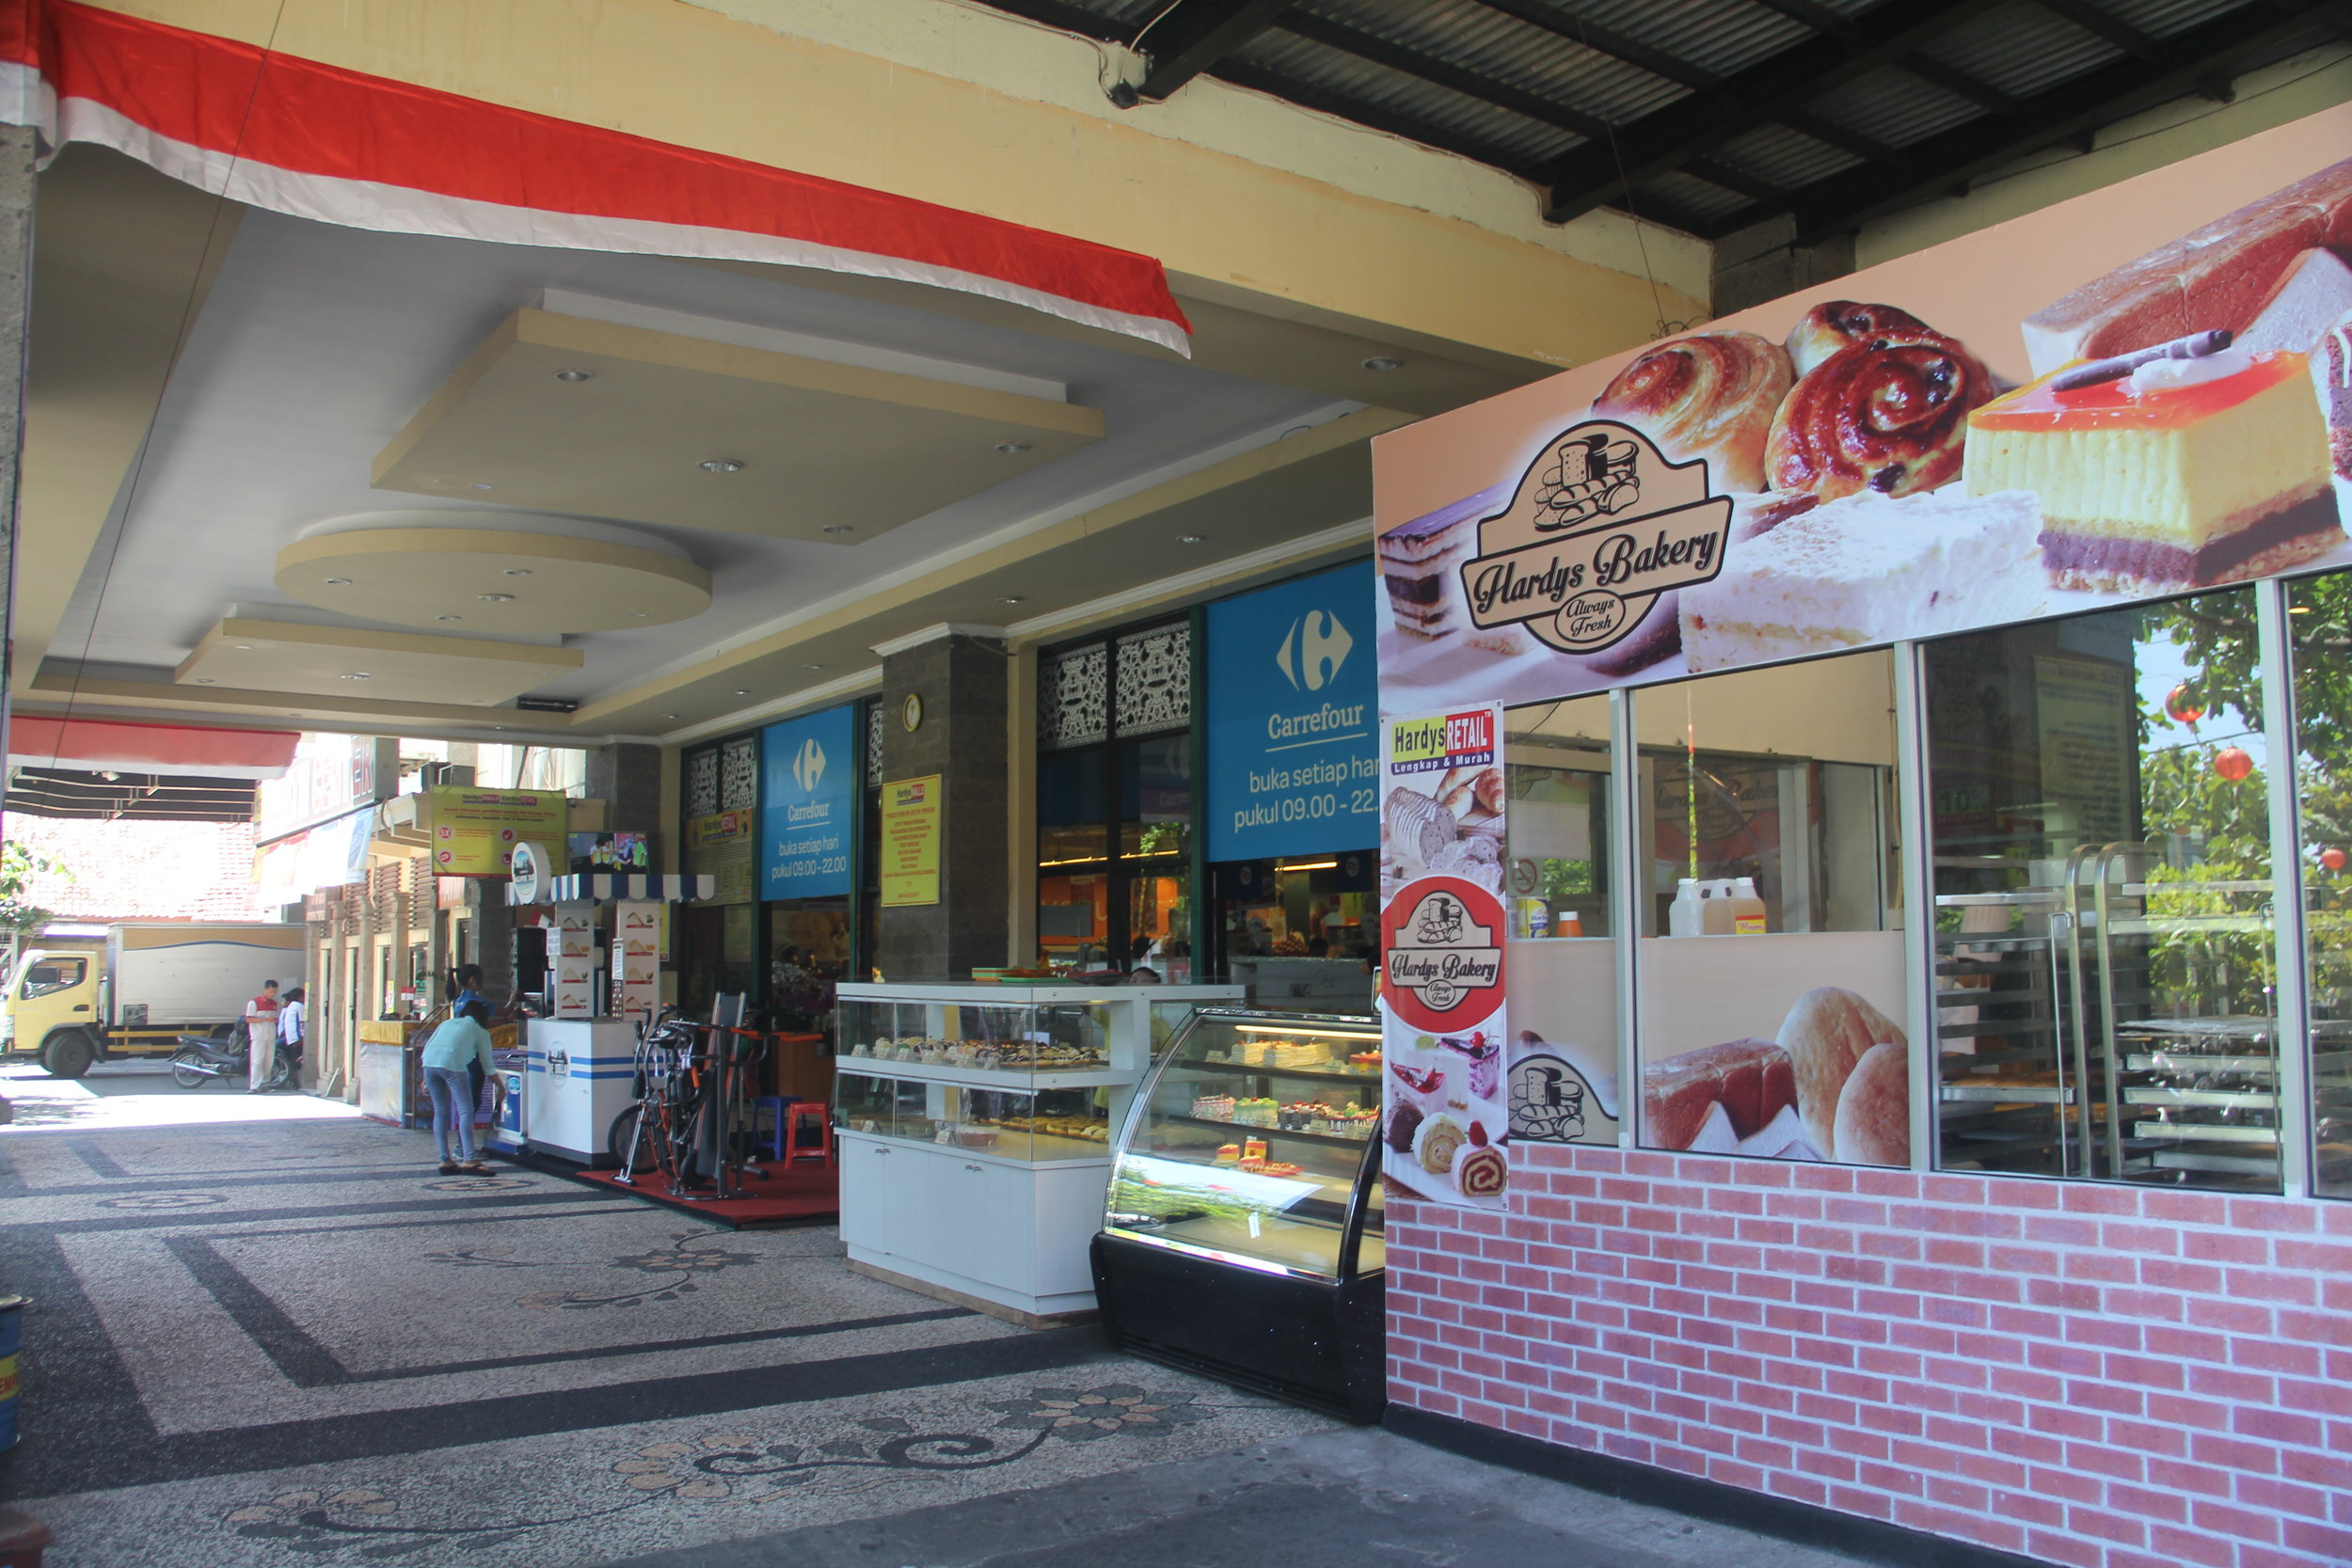 Bakery in front of Carrefour